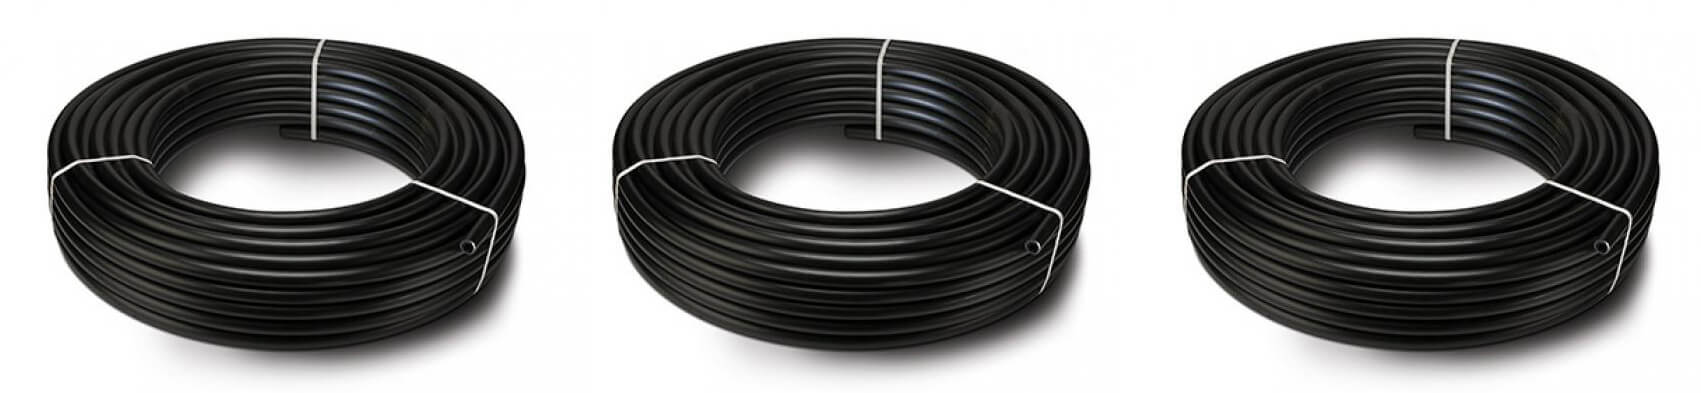 Geothermal Pipes for Heat Pumps